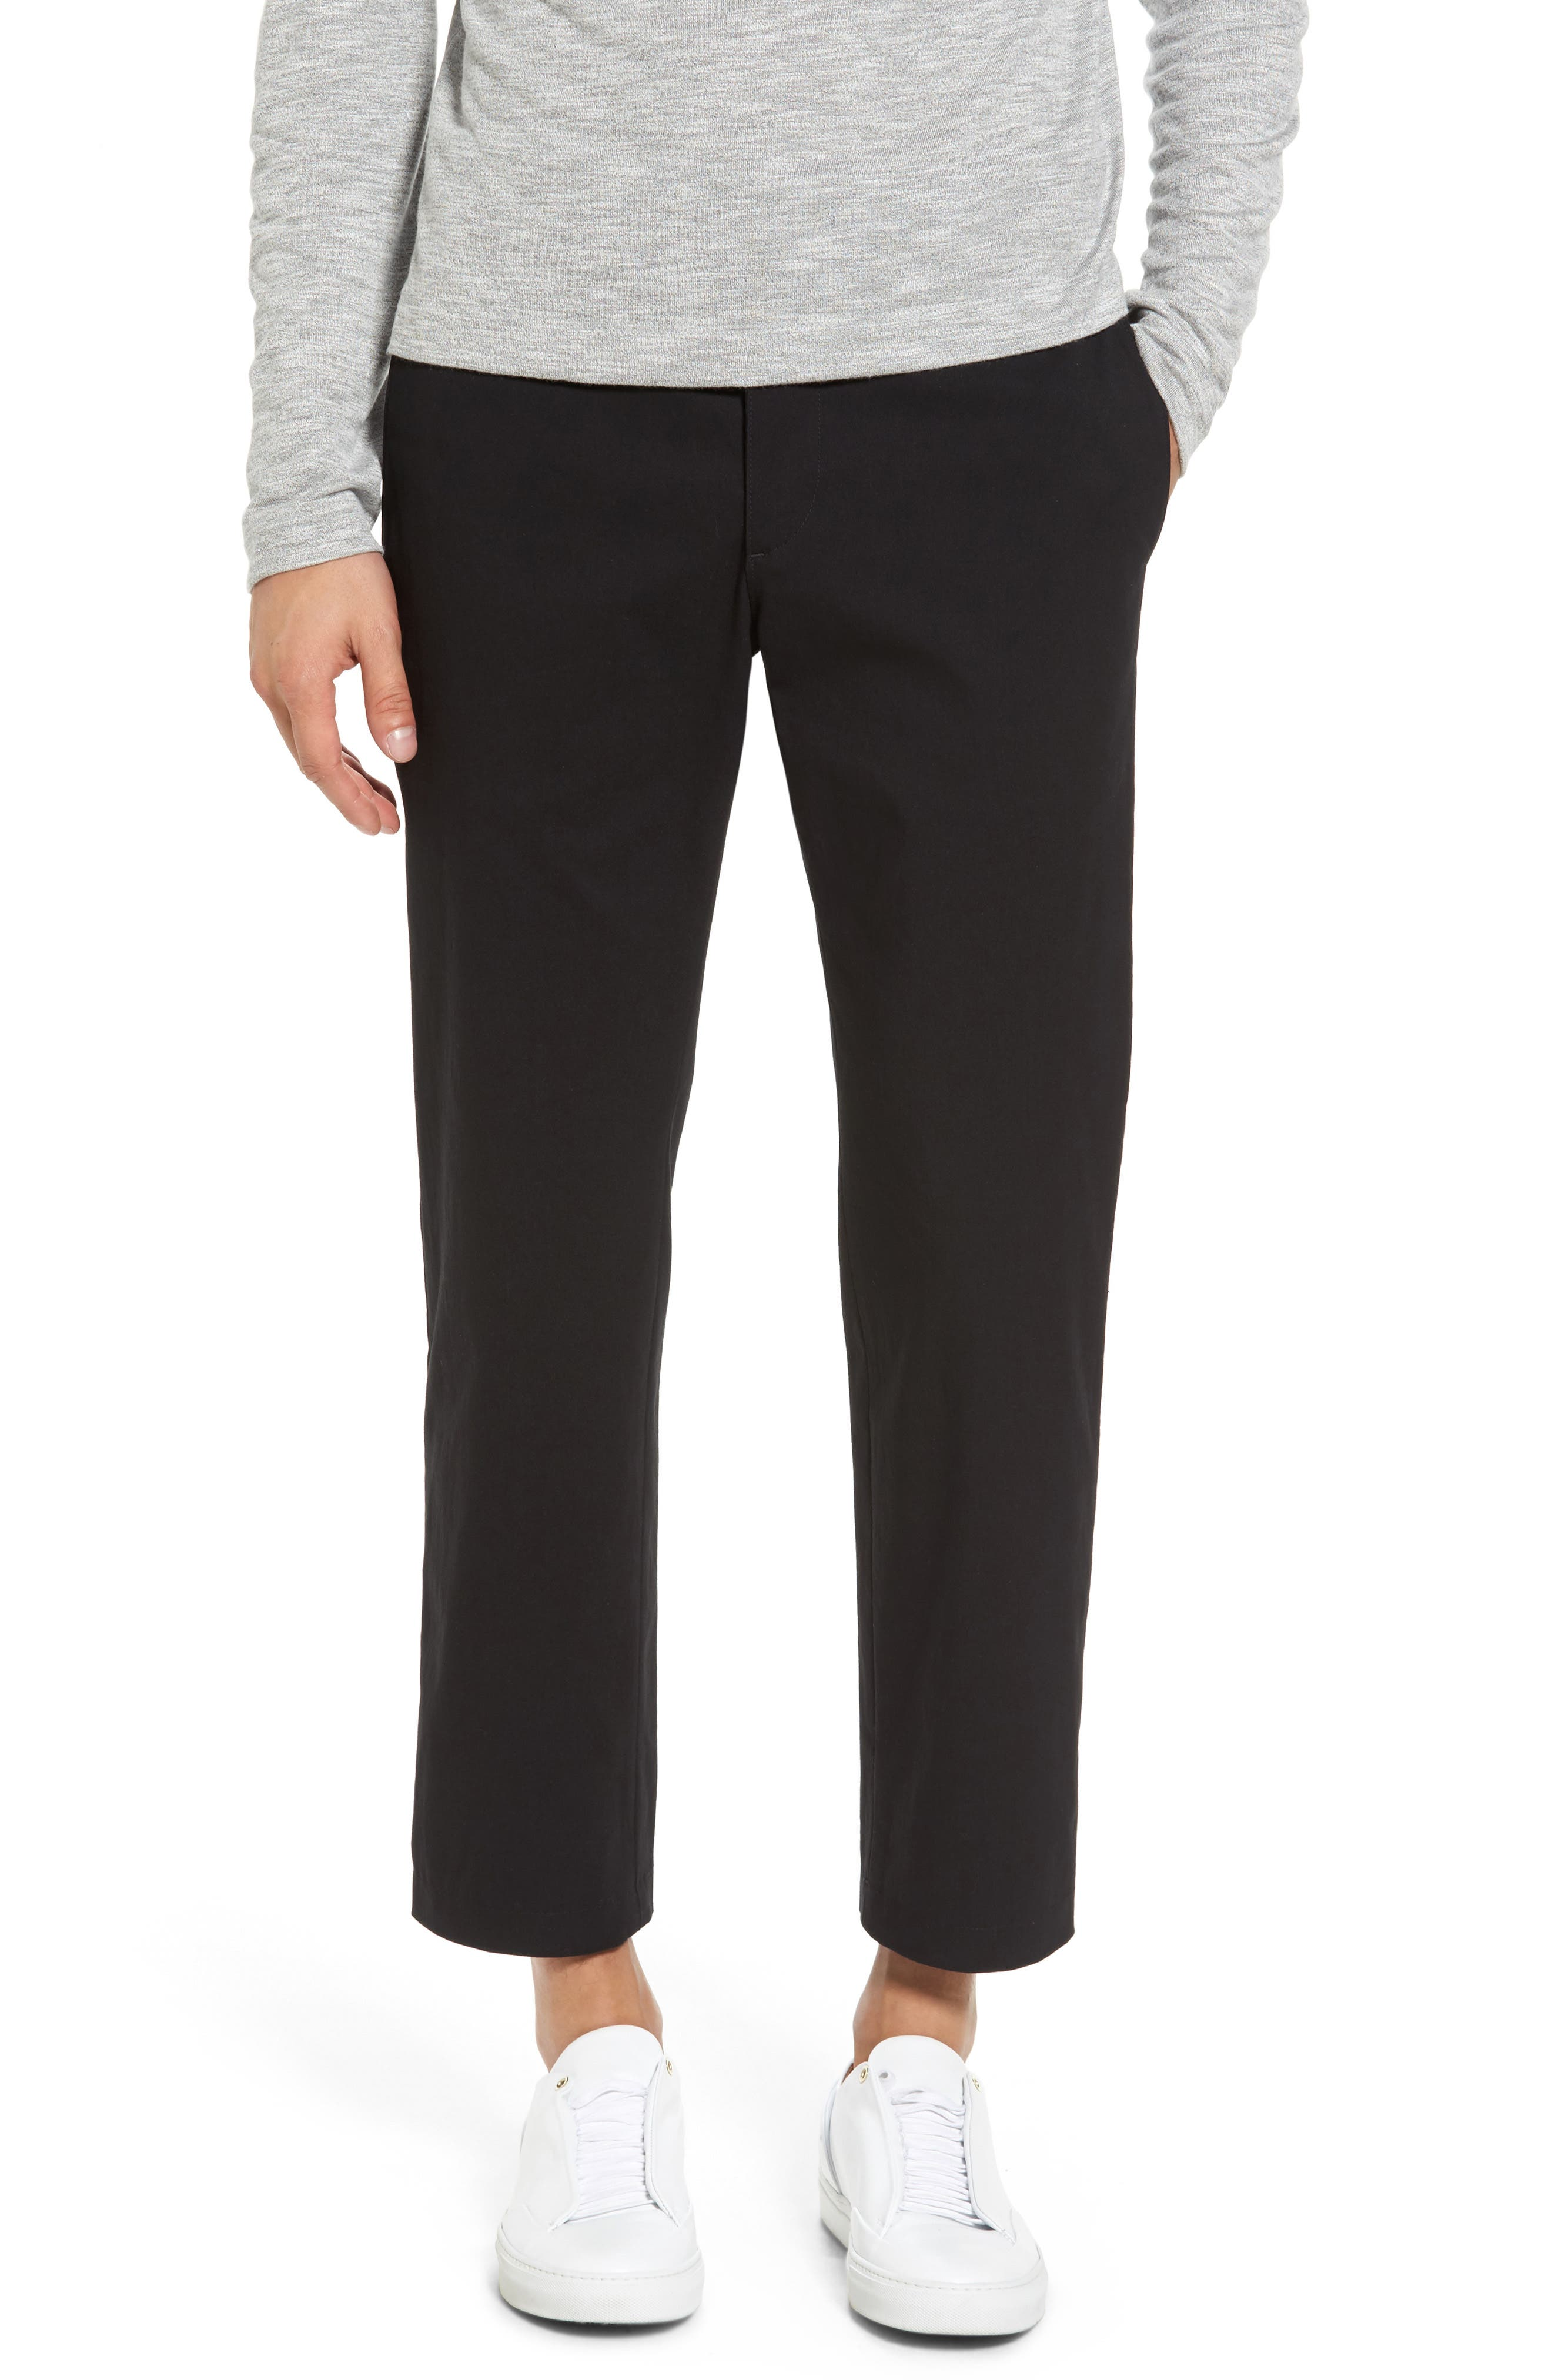 Alternate Image 1 Selected - Theory Utility Modern Straight Leg Pants